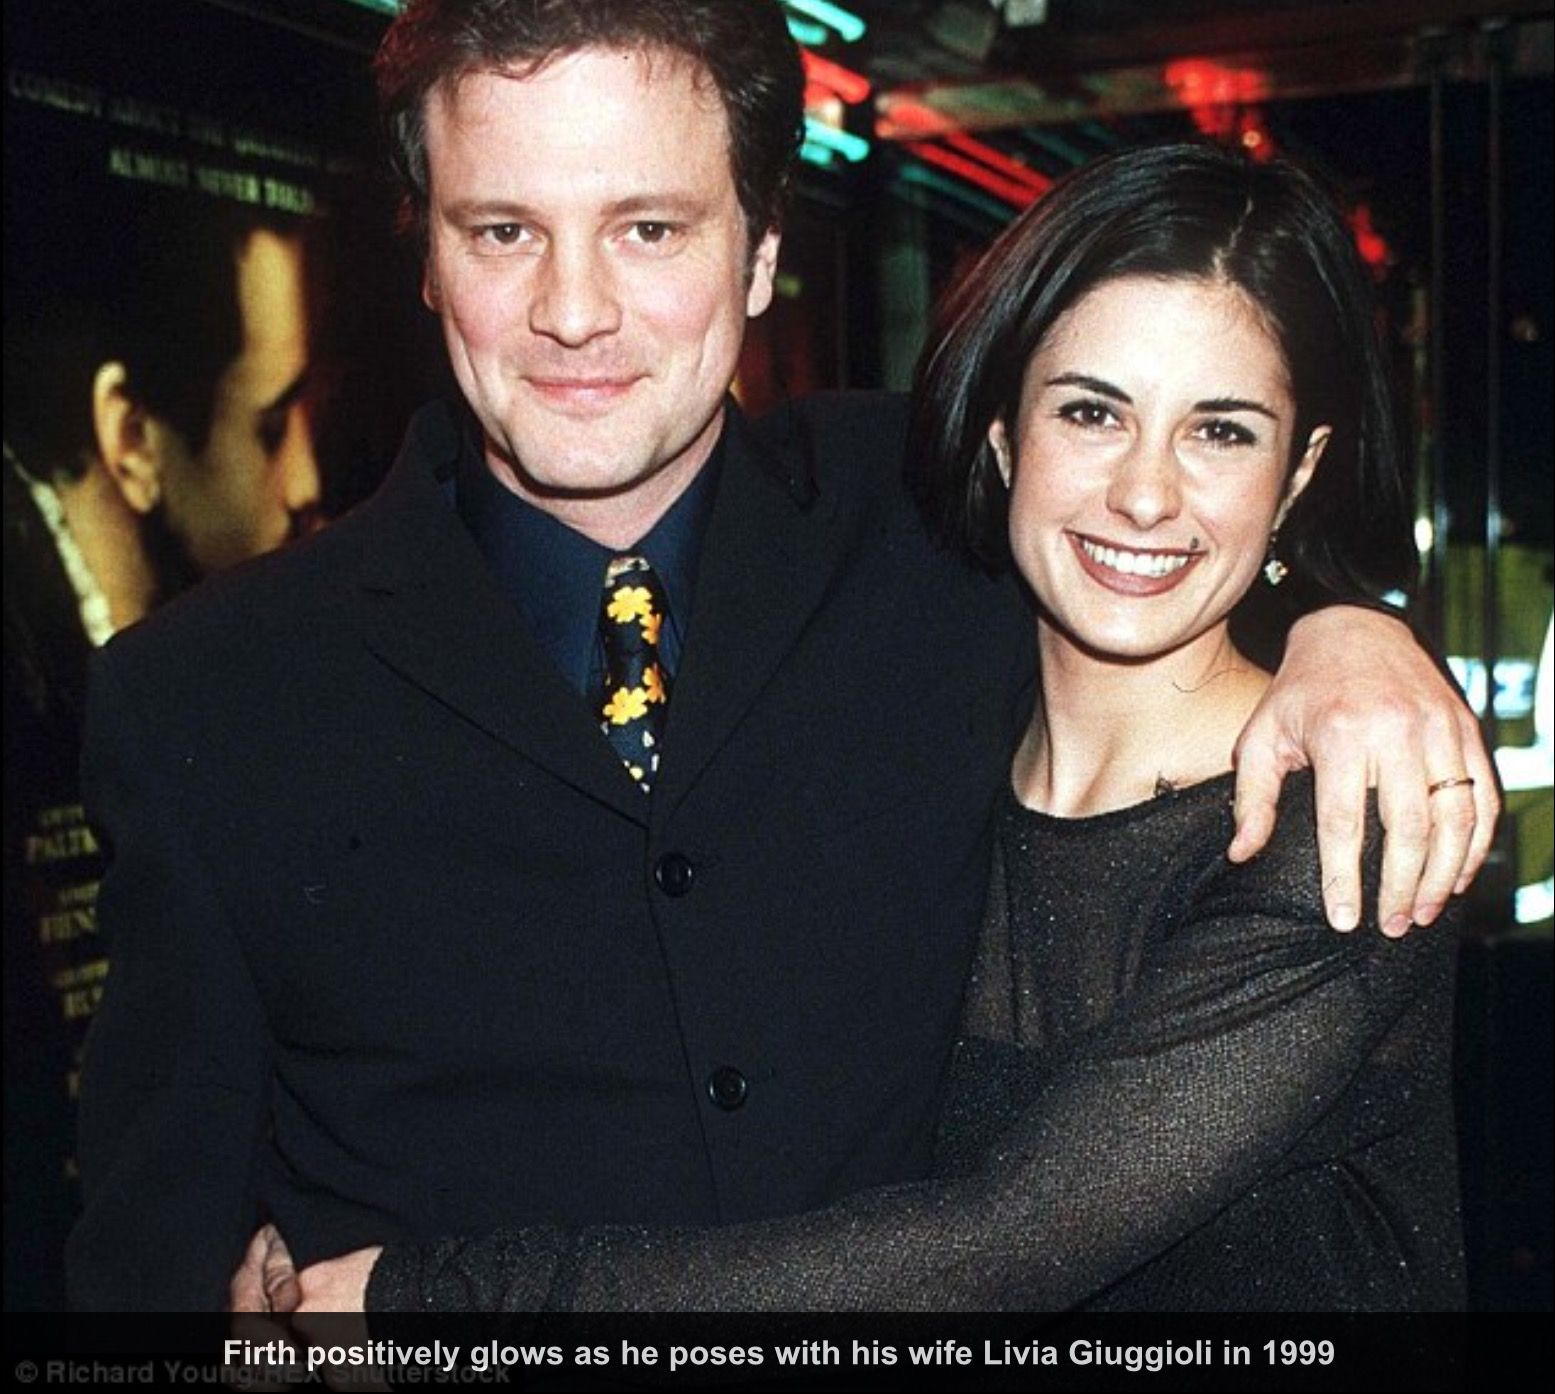 Mr. and Mrs. Colin Firth